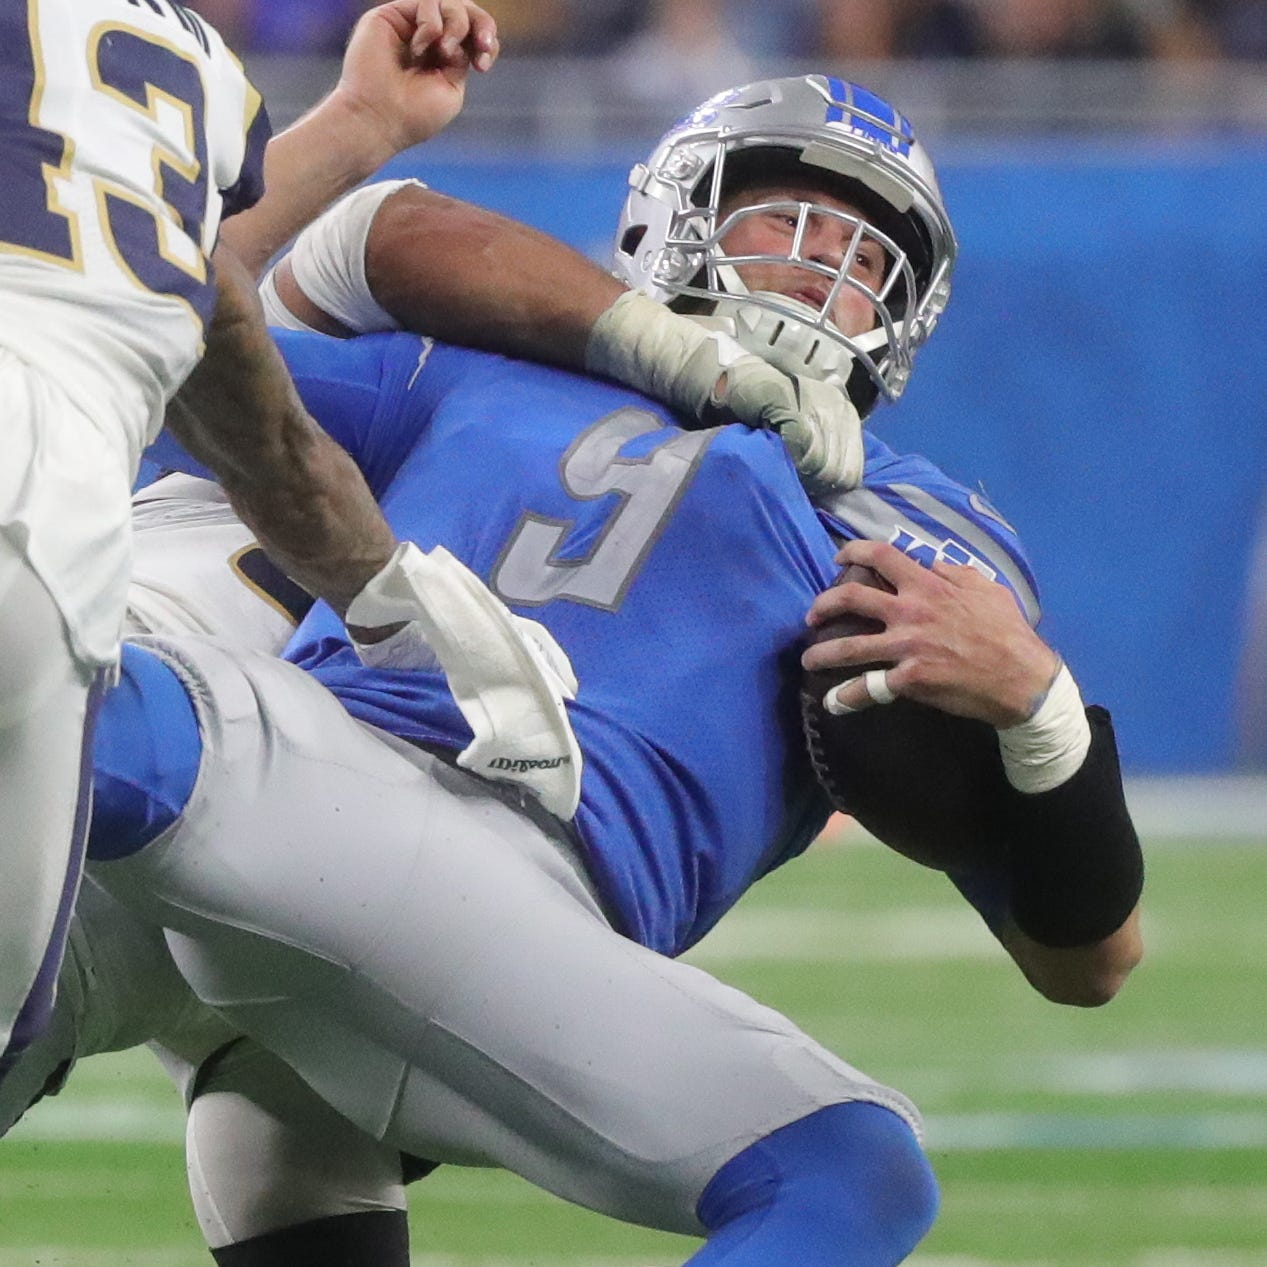 Detroit Lions mailbag: Reasons why they could surprise, disappoint in 2019